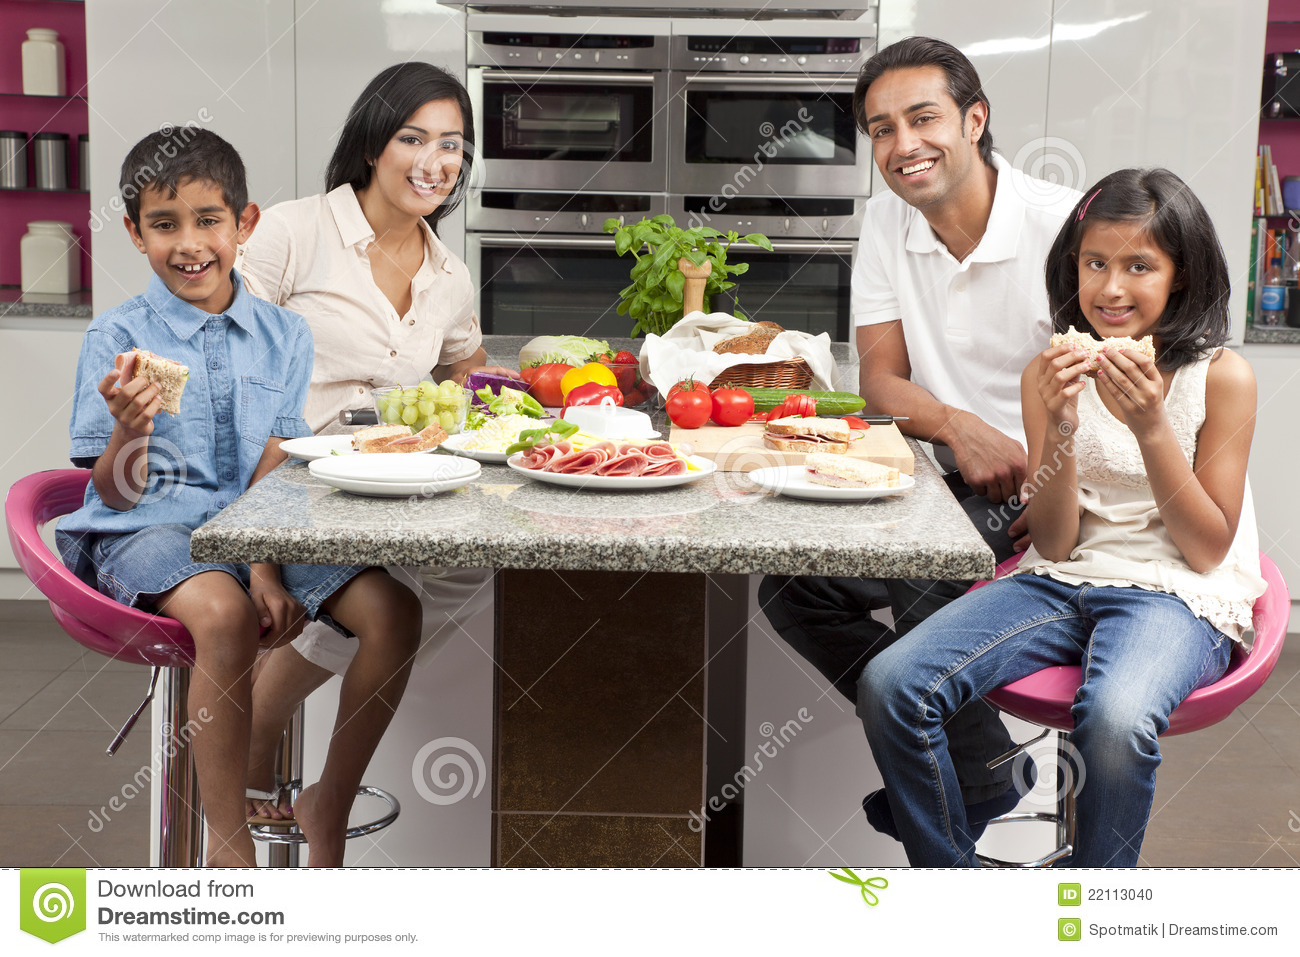 An attractive happy, smiling Asian Indian family of mother, father, son and  daughter eating healthy food & salad in the kitchen at home